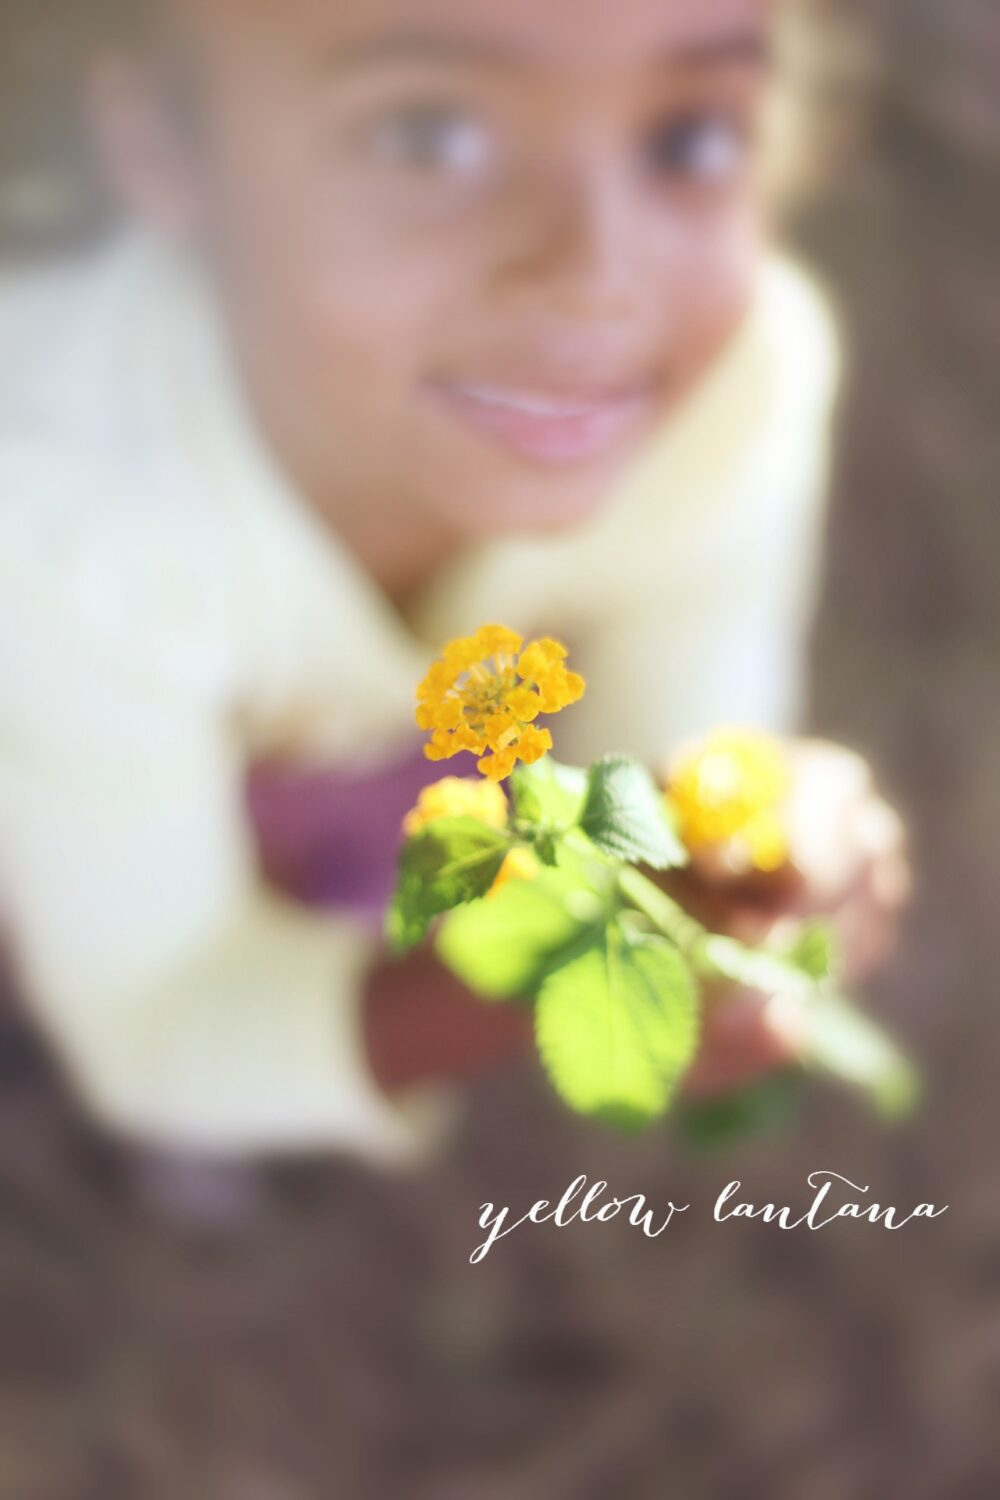 Day 4: Yellow Lantana